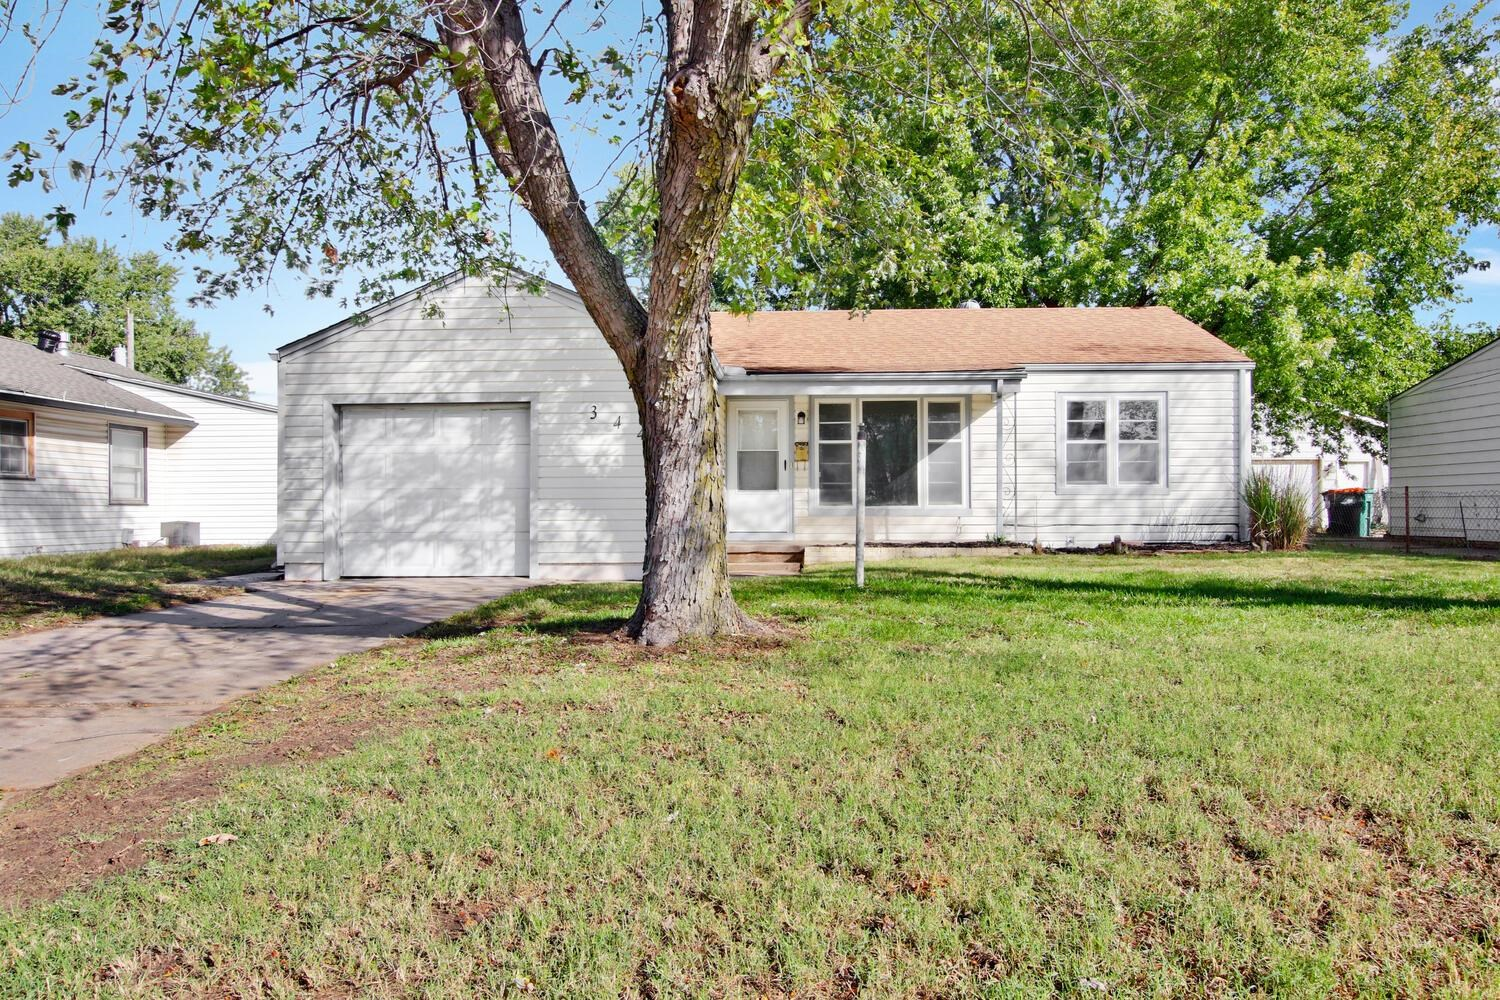 Very well cared for 3 bedroom 2 bath ranch with a finished basement located in an established neighb